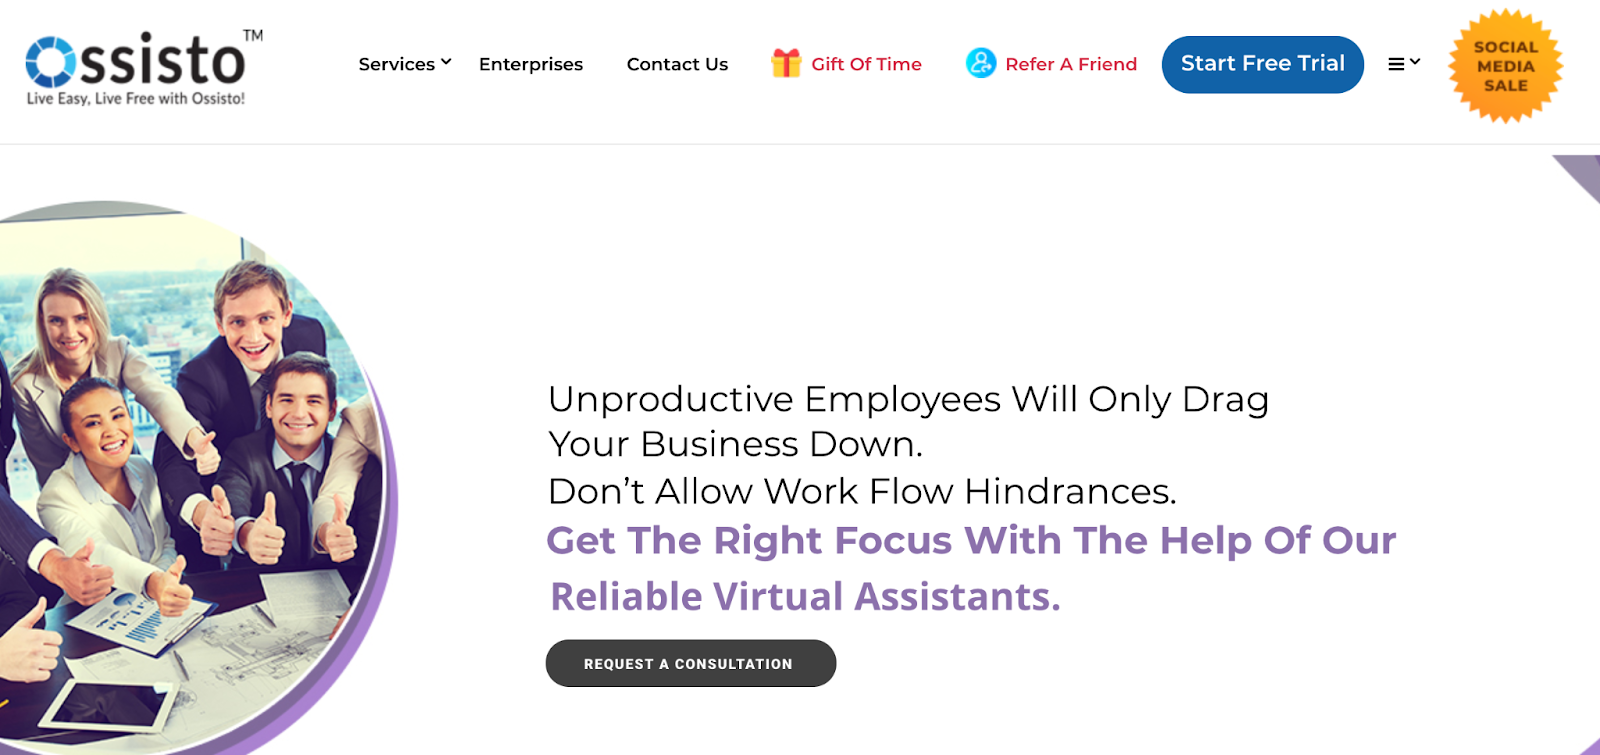 Ossisto website – outsourcing company in India